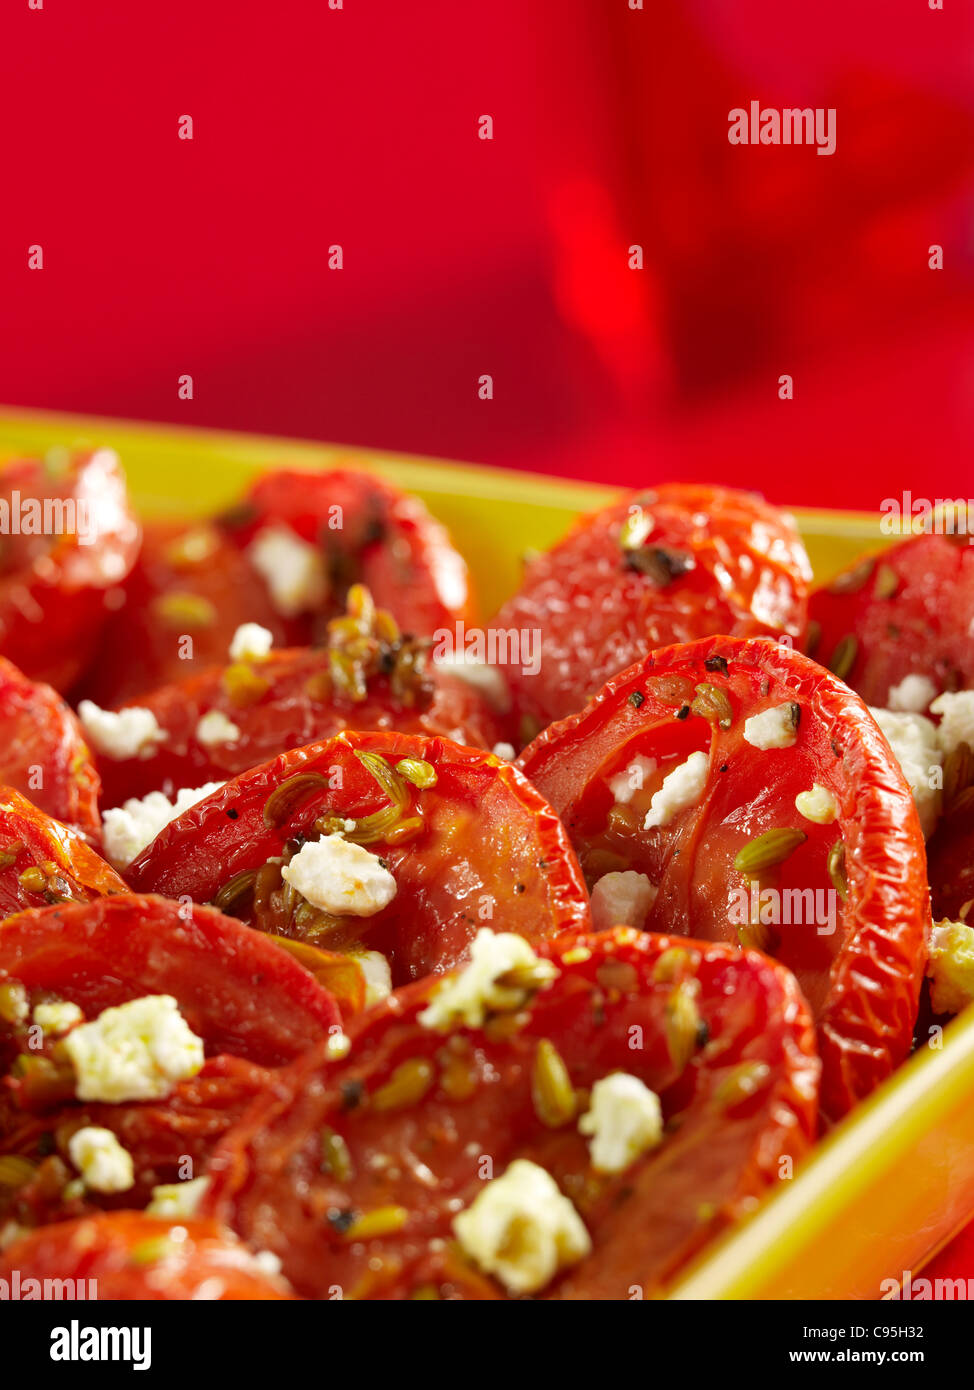 Roasted tomatoes with crumbled cheese in a casserole dish - Stock Image